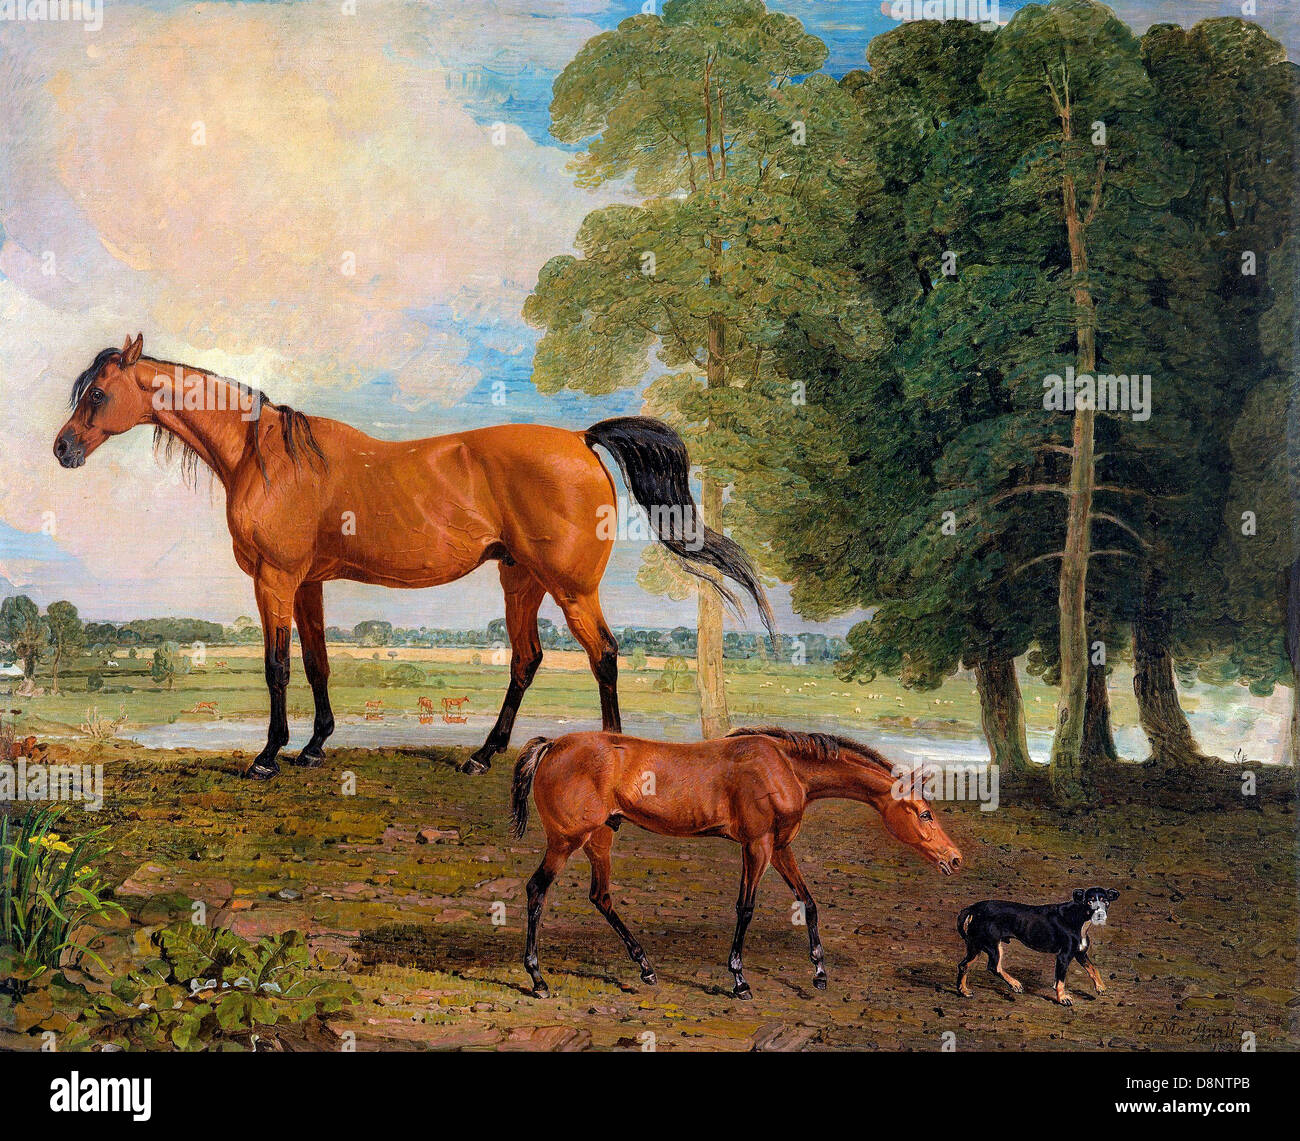 Benjamin Marshall, Broodmare with Foal, and a Terrier 1822 Oil on canvas. Yale Center for British Art, New Haven, - Stock Image